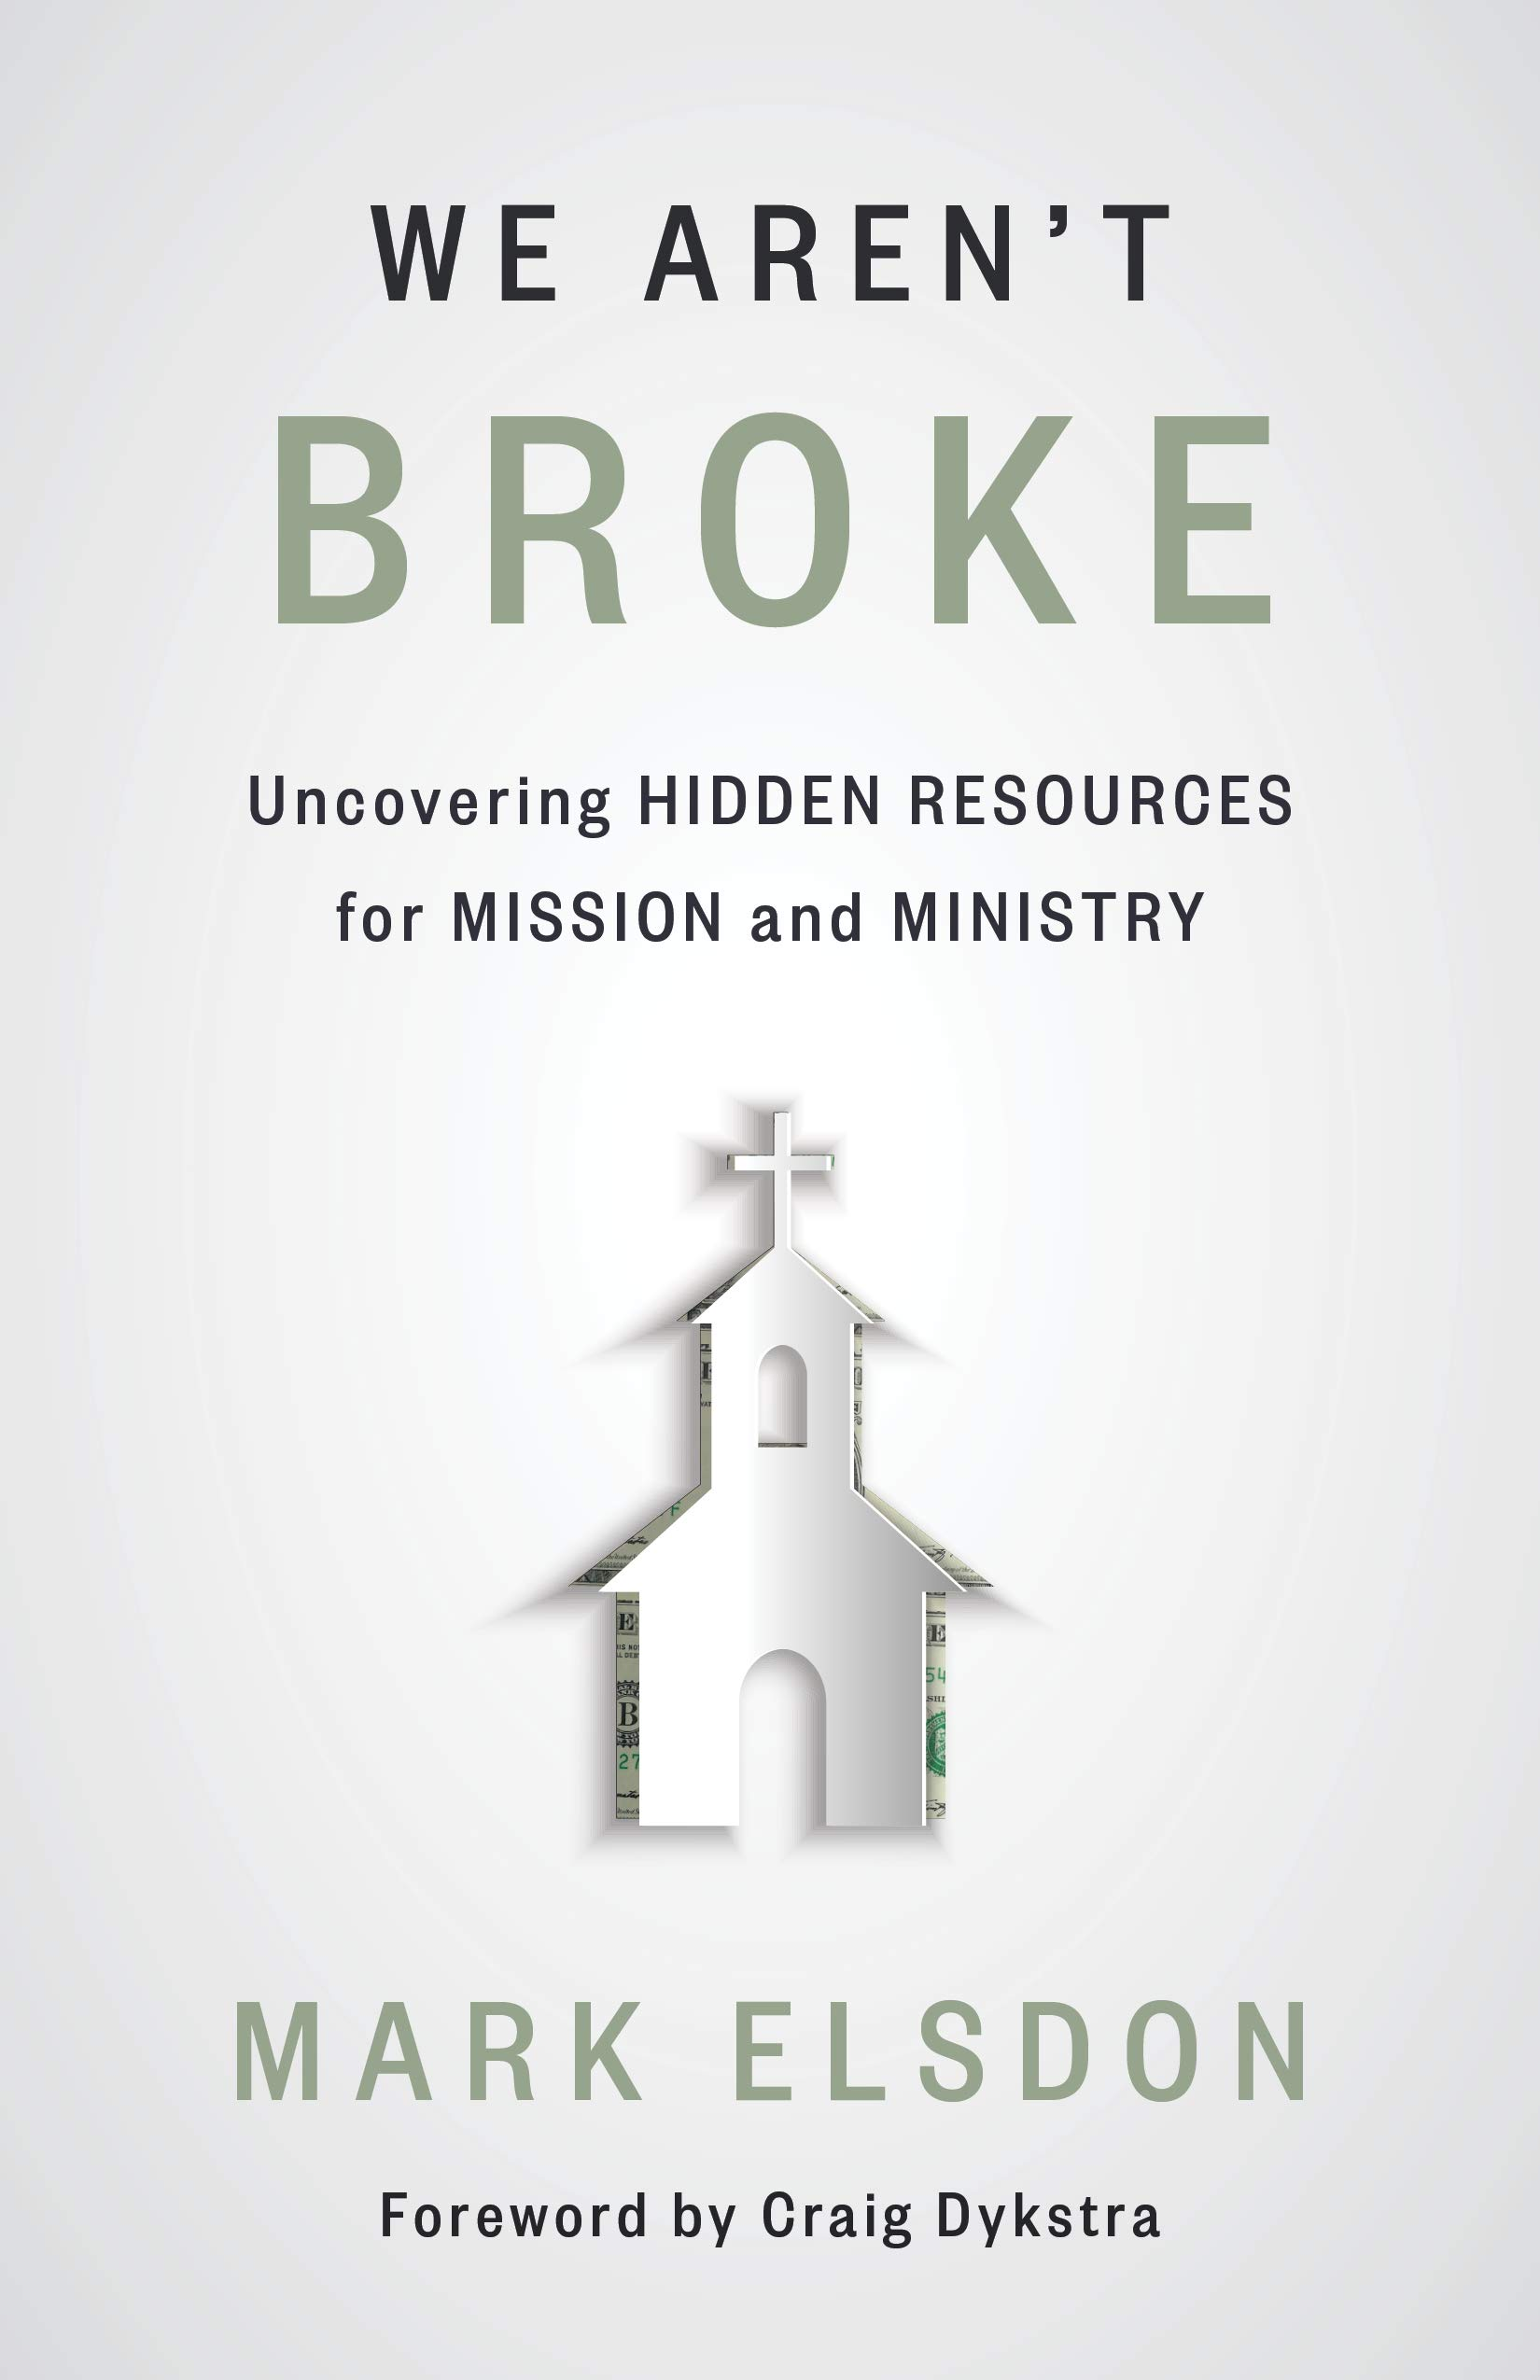 Book Review: 'We Aren't Broke: Uncovering Hidden Resources for Mission and Ministry' by Mark Elsdon